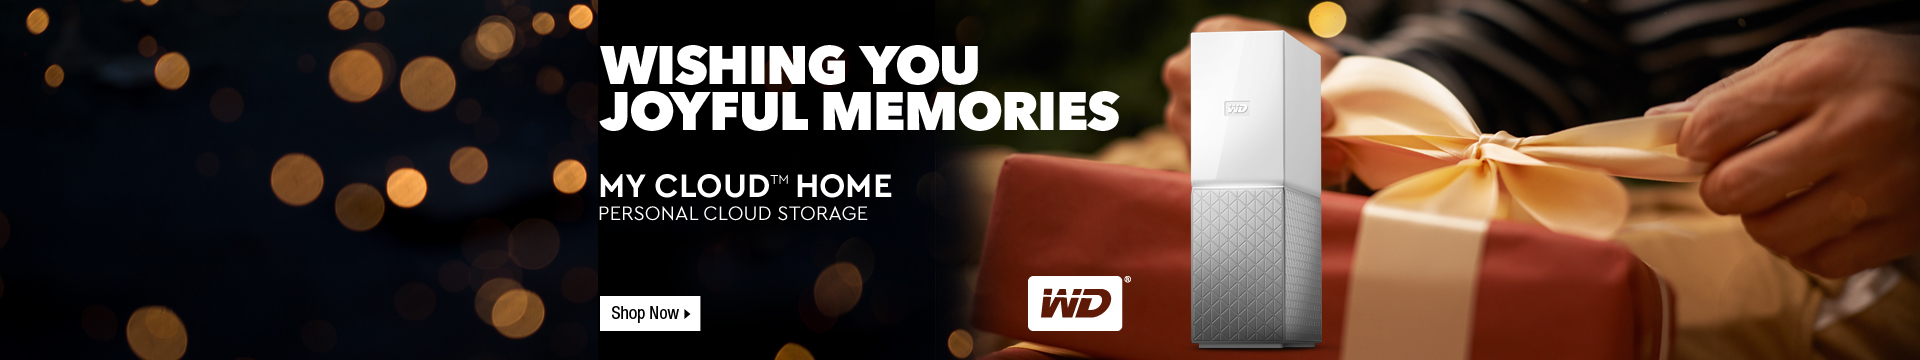 WD — Wishing You Joyful Memories